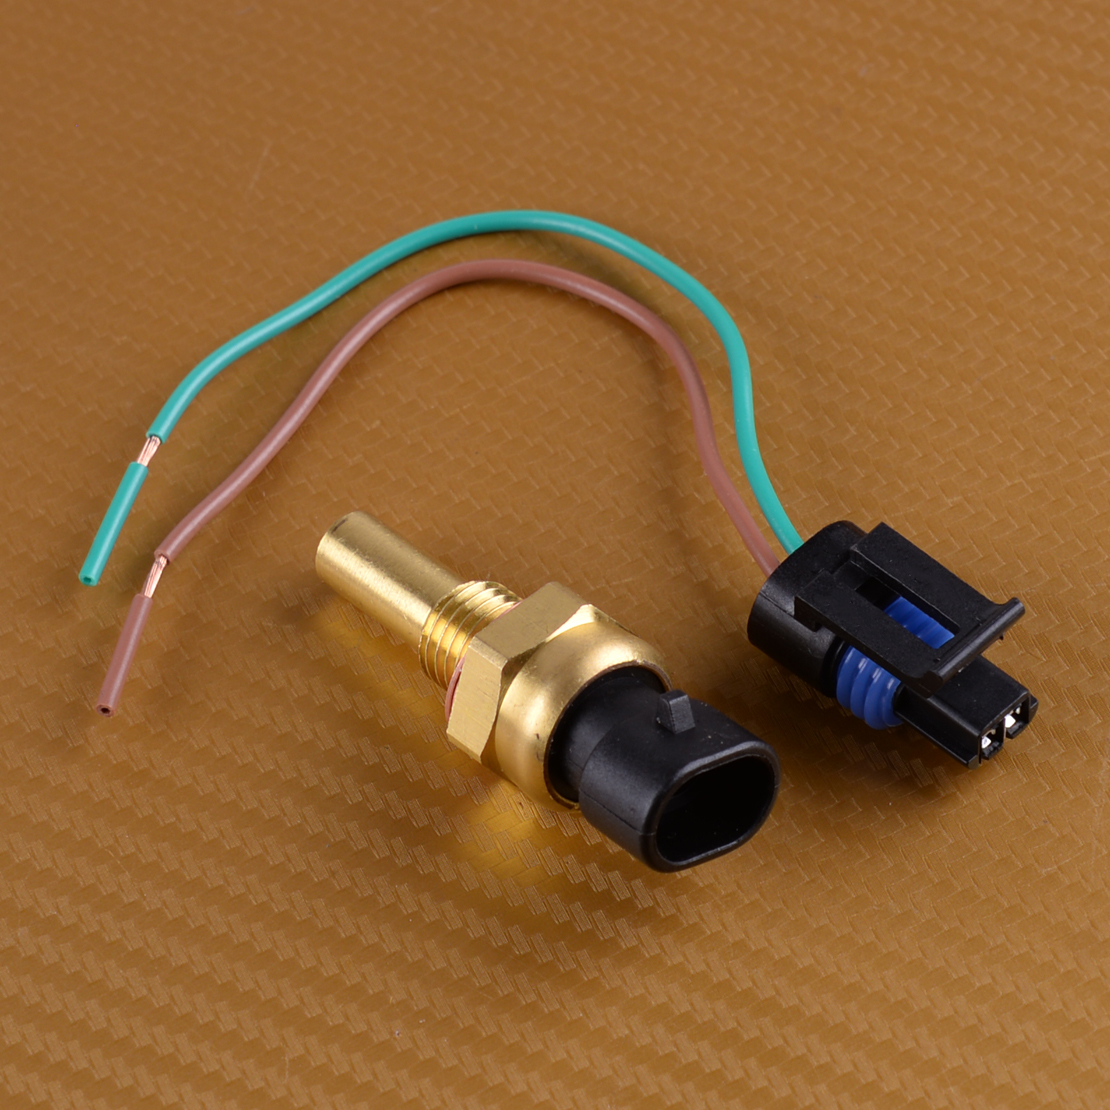 beler Engine Coolant Temperature Sensor with Connector Fit for Buick Cadillac GMC Daewoo Isuzu Hummer Pontiac 12162193 15326388